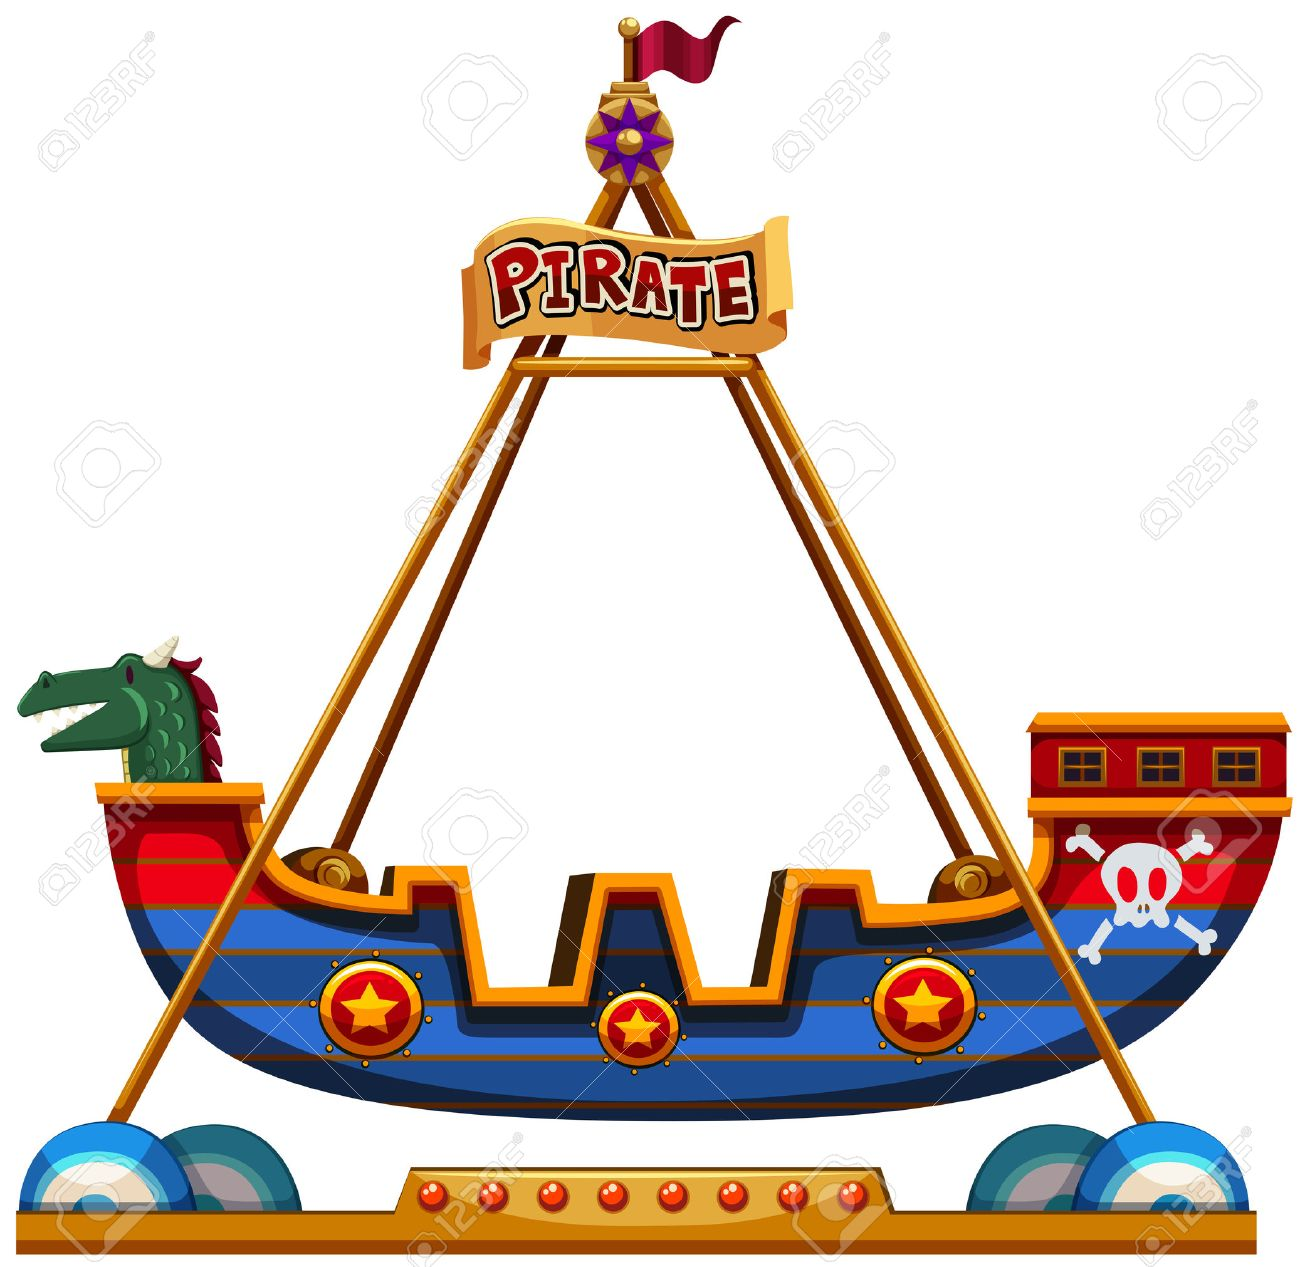 Carnival ride clipart 5 » Clipart Station.